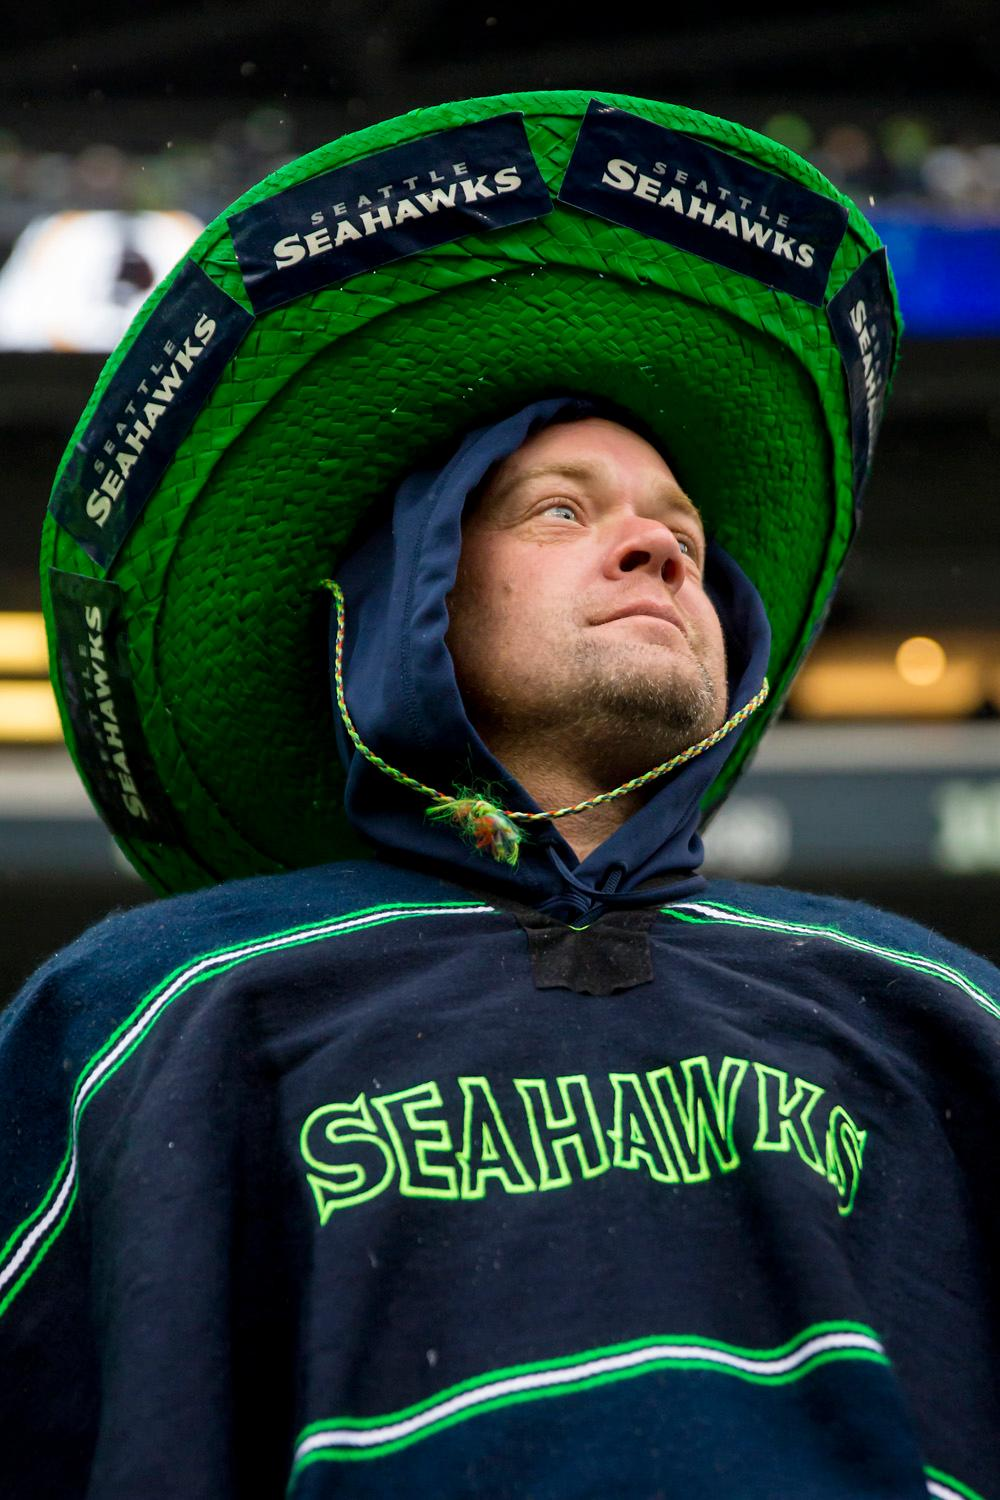 Fans dress in their crazy fan pride as the Seattle Seahawks compete against the Washington Redskins on Sunday, Nov. 5, 2017, at CenturyLink Field. The Redskins lead the half, 7-2. (Sy Bean / Seattle Refined)